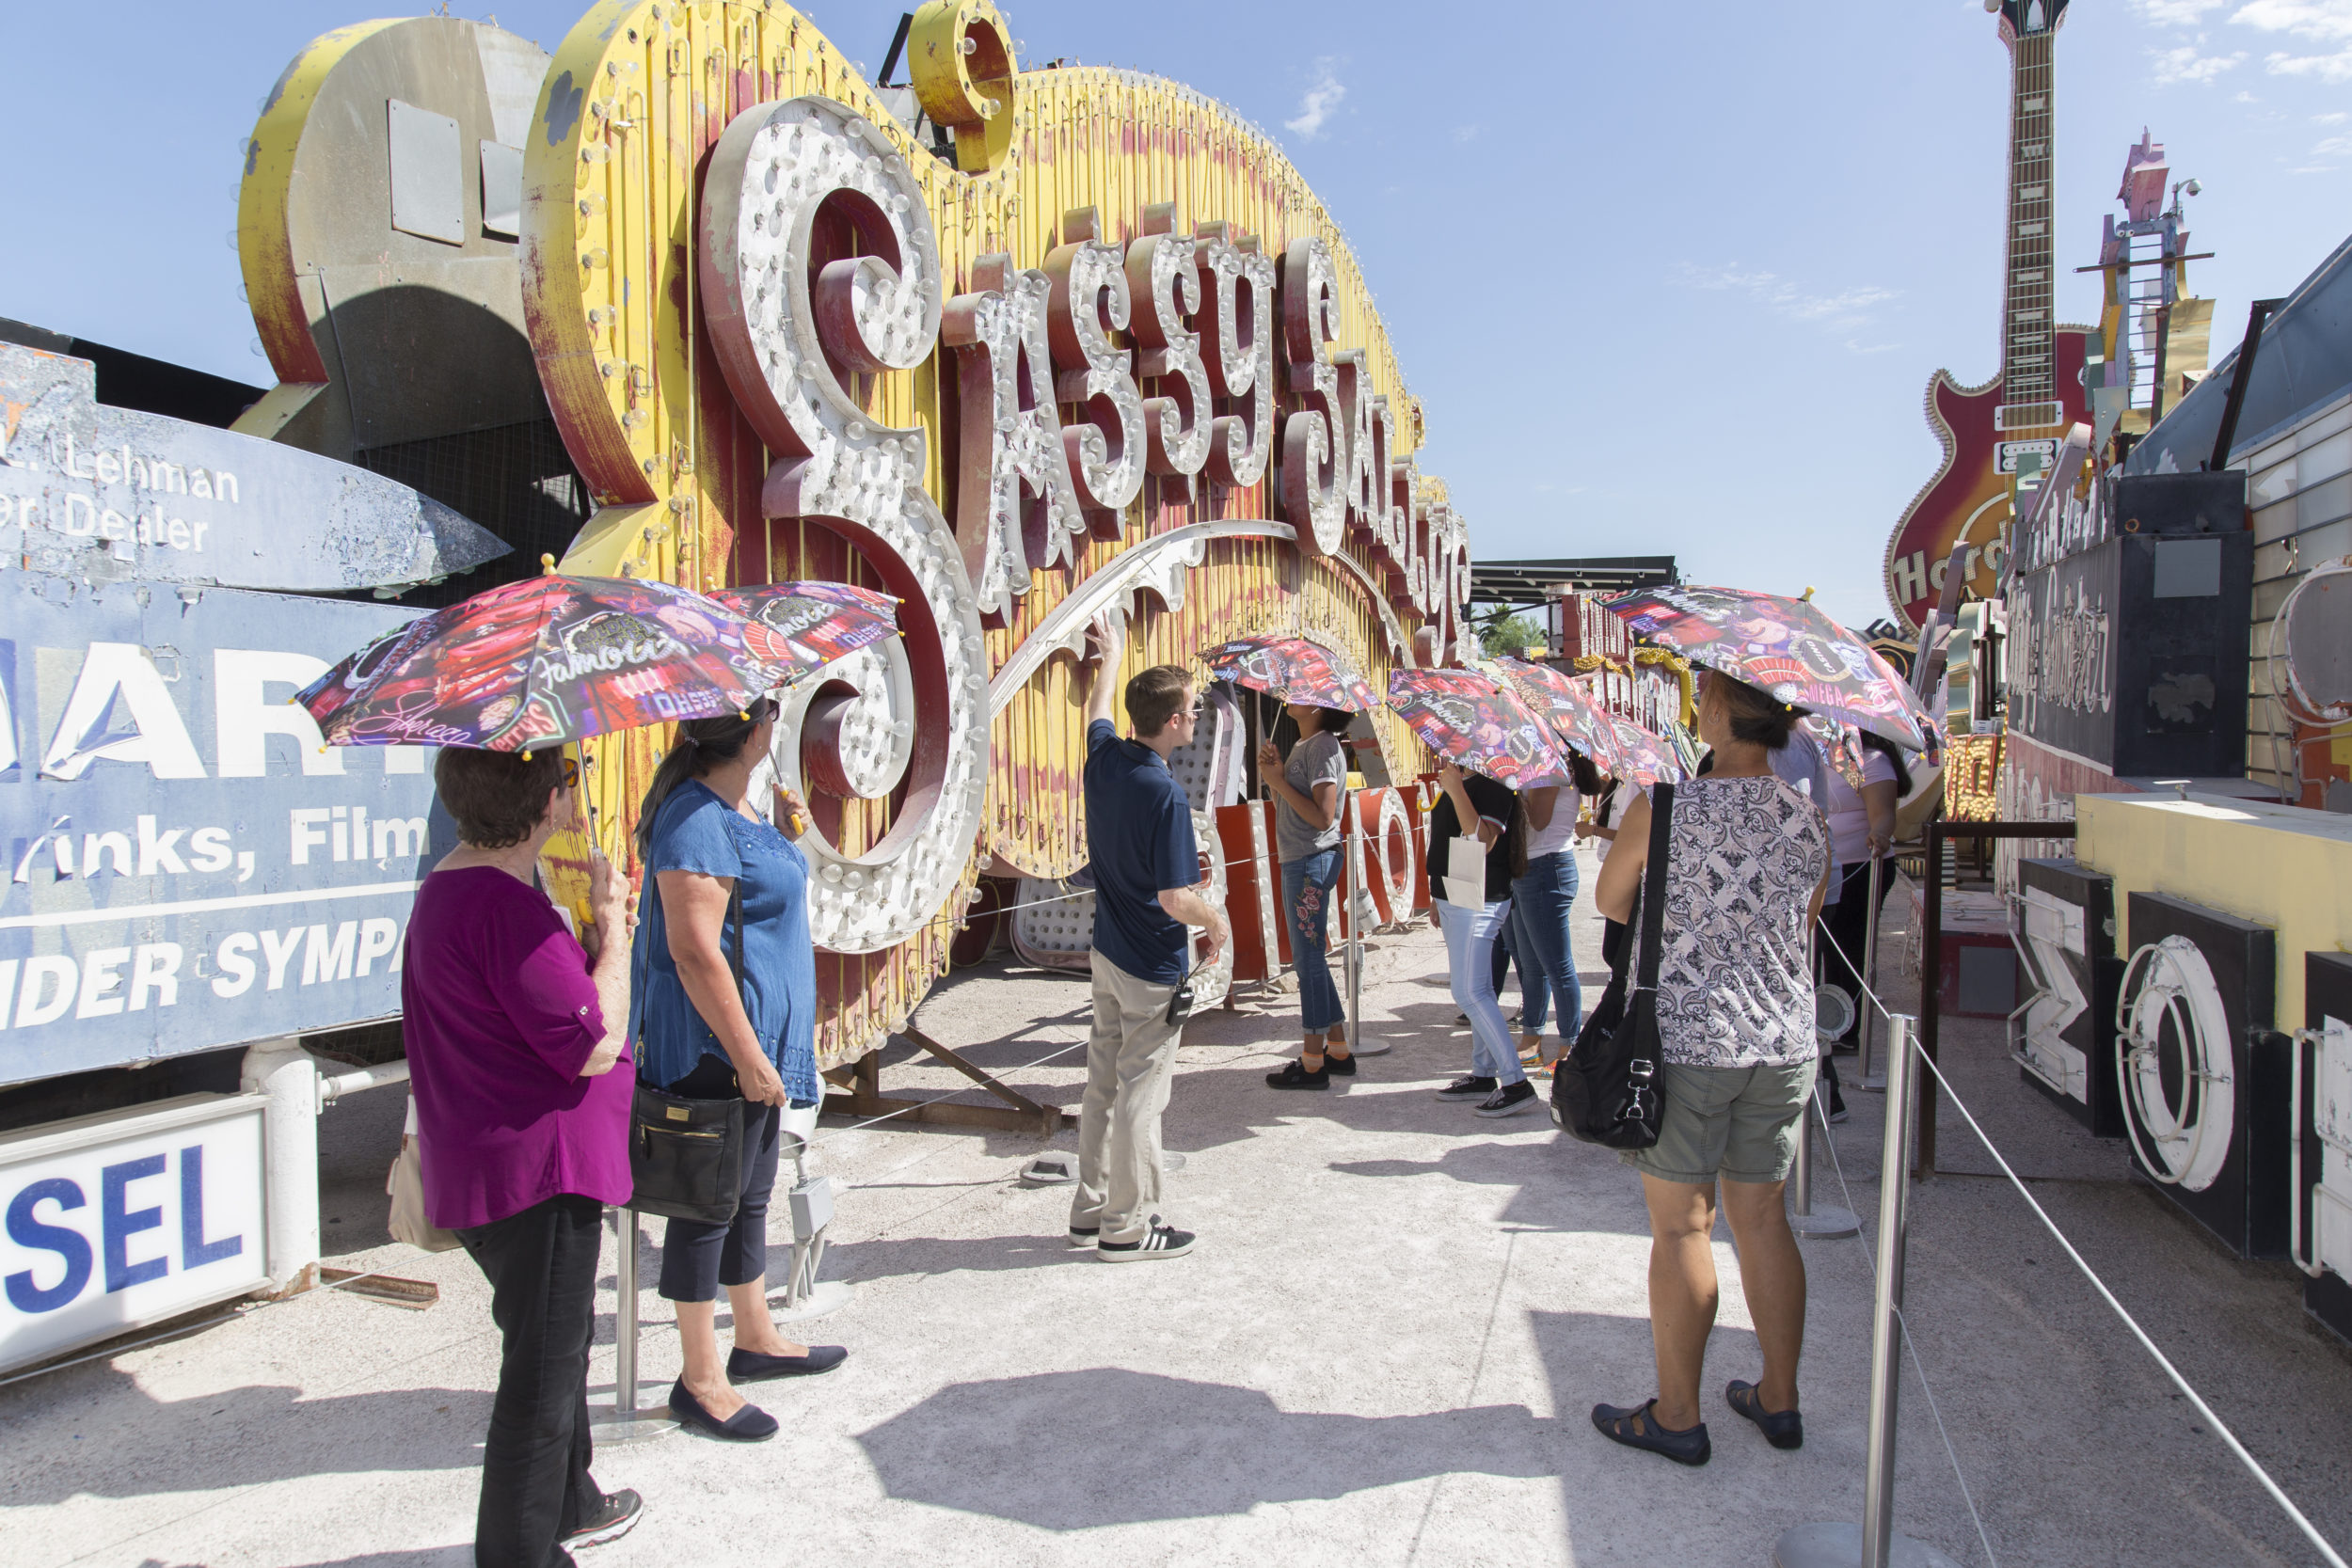 "A group of people holding parasols stands outdoors in front of a large neon sign that says ""Sassy."""